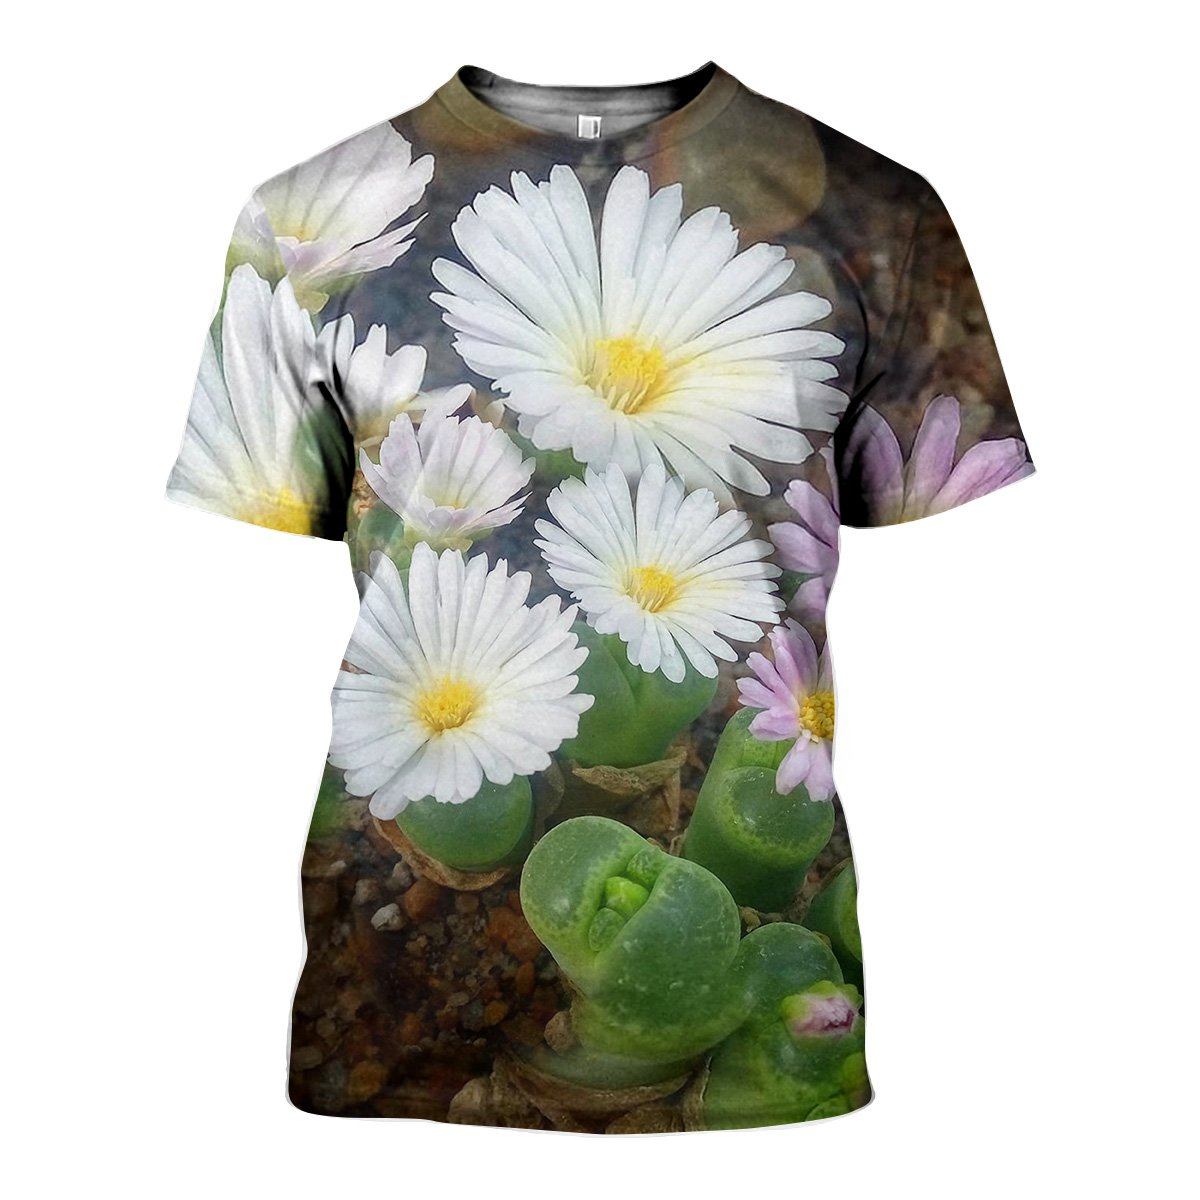 3D All Over Printed Conophytum Limpidum Shirts And Shorts